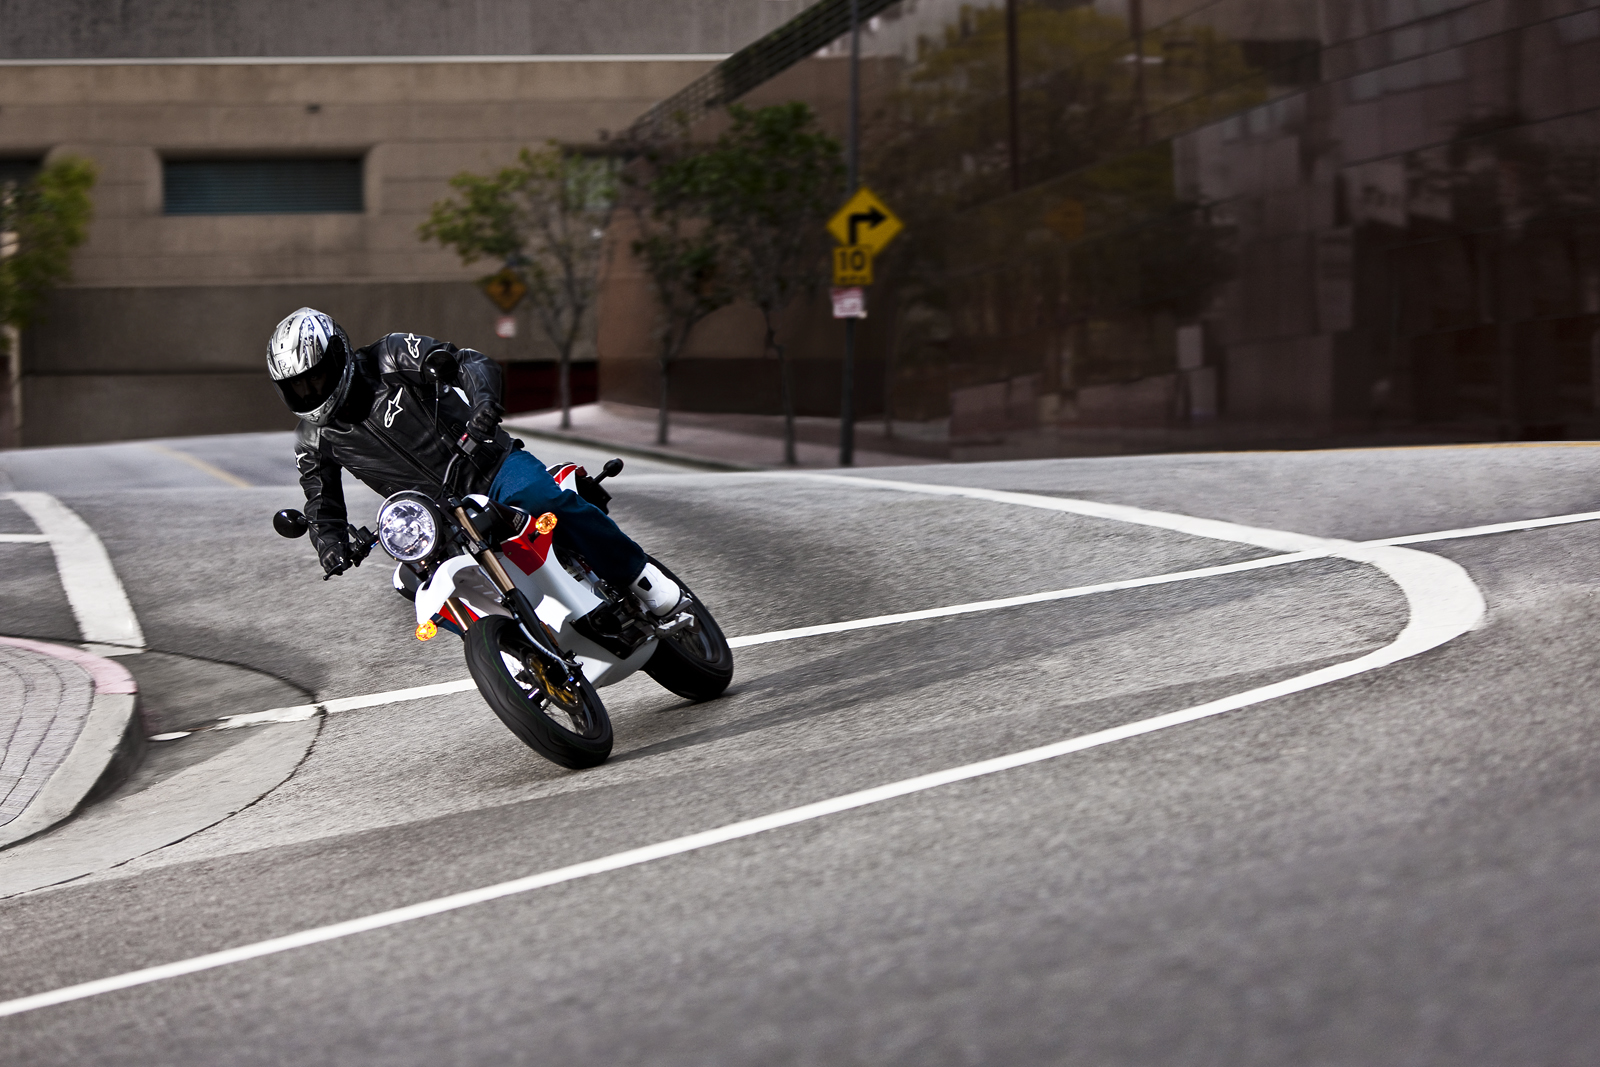 '.2010 Zero S Electric Motorcycle: Los Angeles - Sideways Around Corner.'